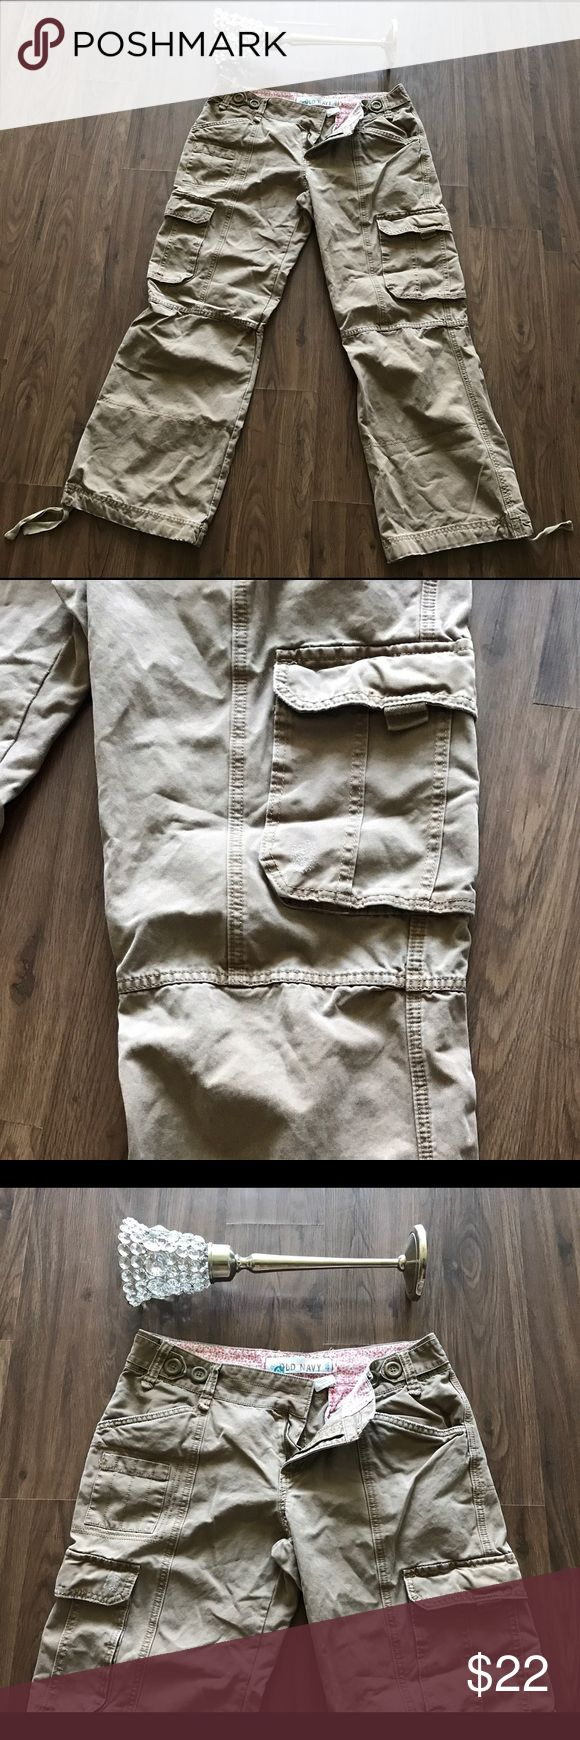 Womens Old Navy Ultra Waist Cargo Pants Size 14R Old Navy Cargo Pants, Ultra Low Waist, Size 14 Regular, Brown, Comfortable Wear, 100% Cotton, Gently Used/ Like New. Cute Pants. Old Navy Pants